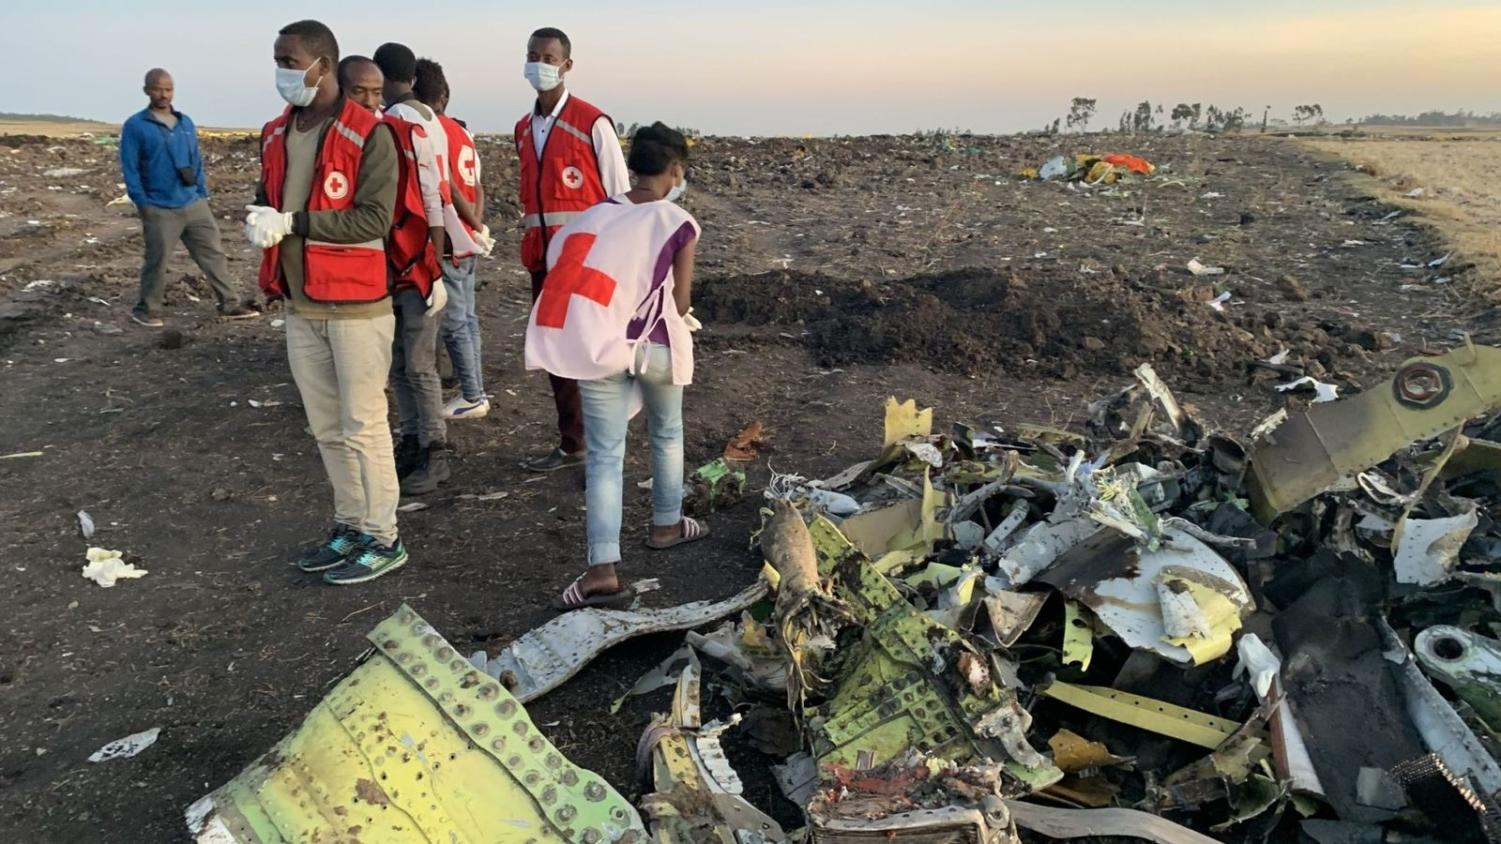 Rescuers in Ethiopia helping with the Ethiopian Airlines wreckage.